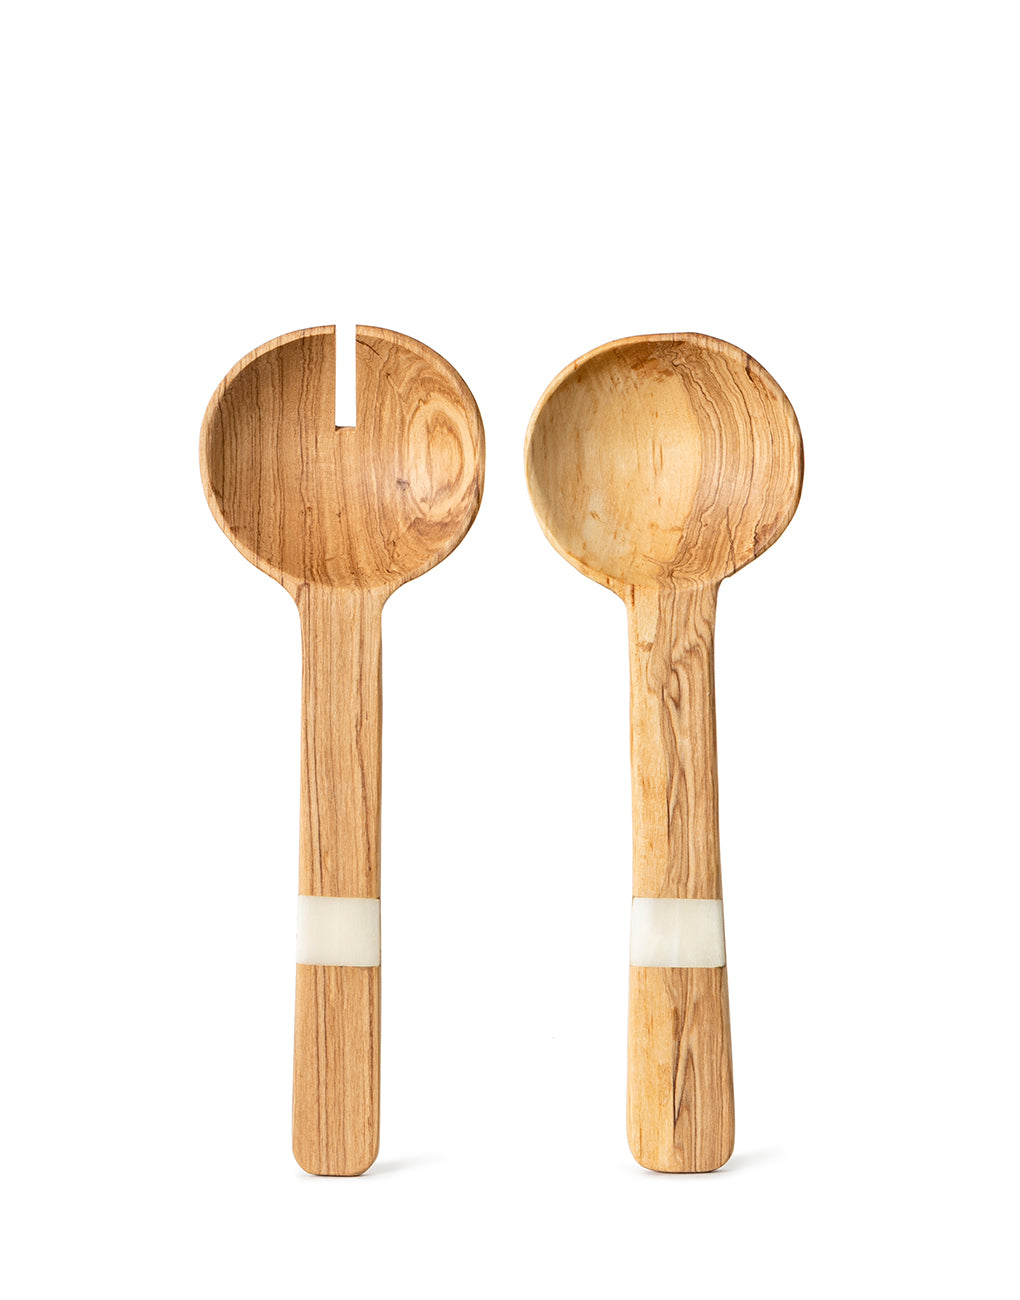 Wide Bone And Wood Notched Salad Servers | The Little Market